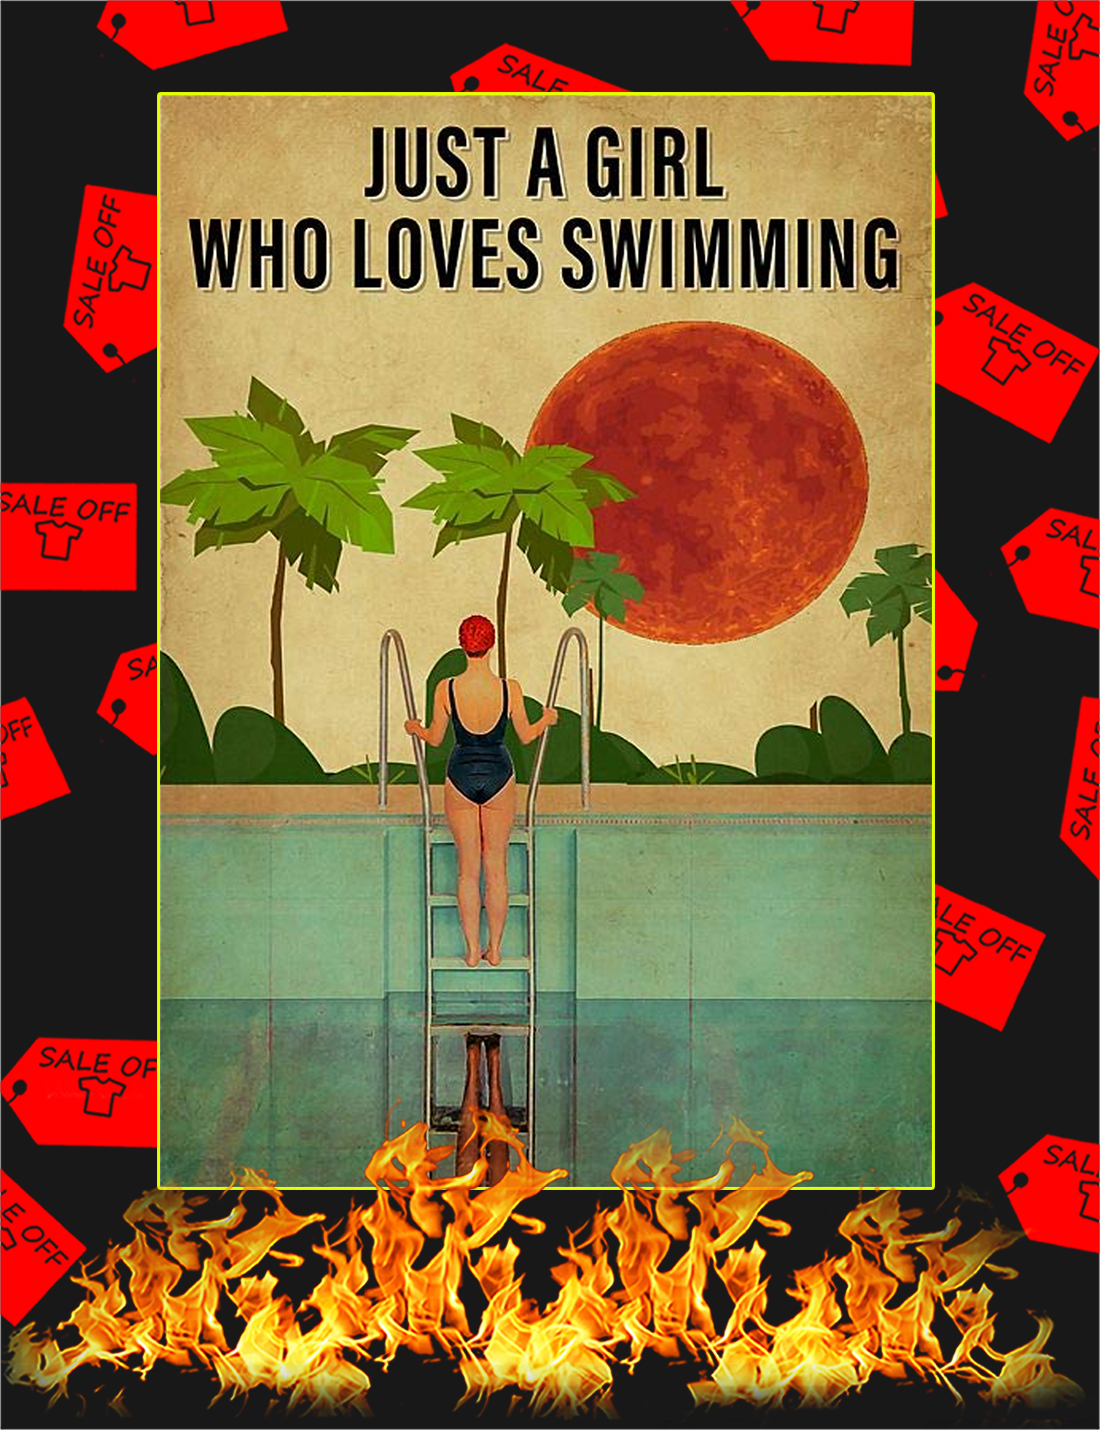 Just a girl who loves swimming poster